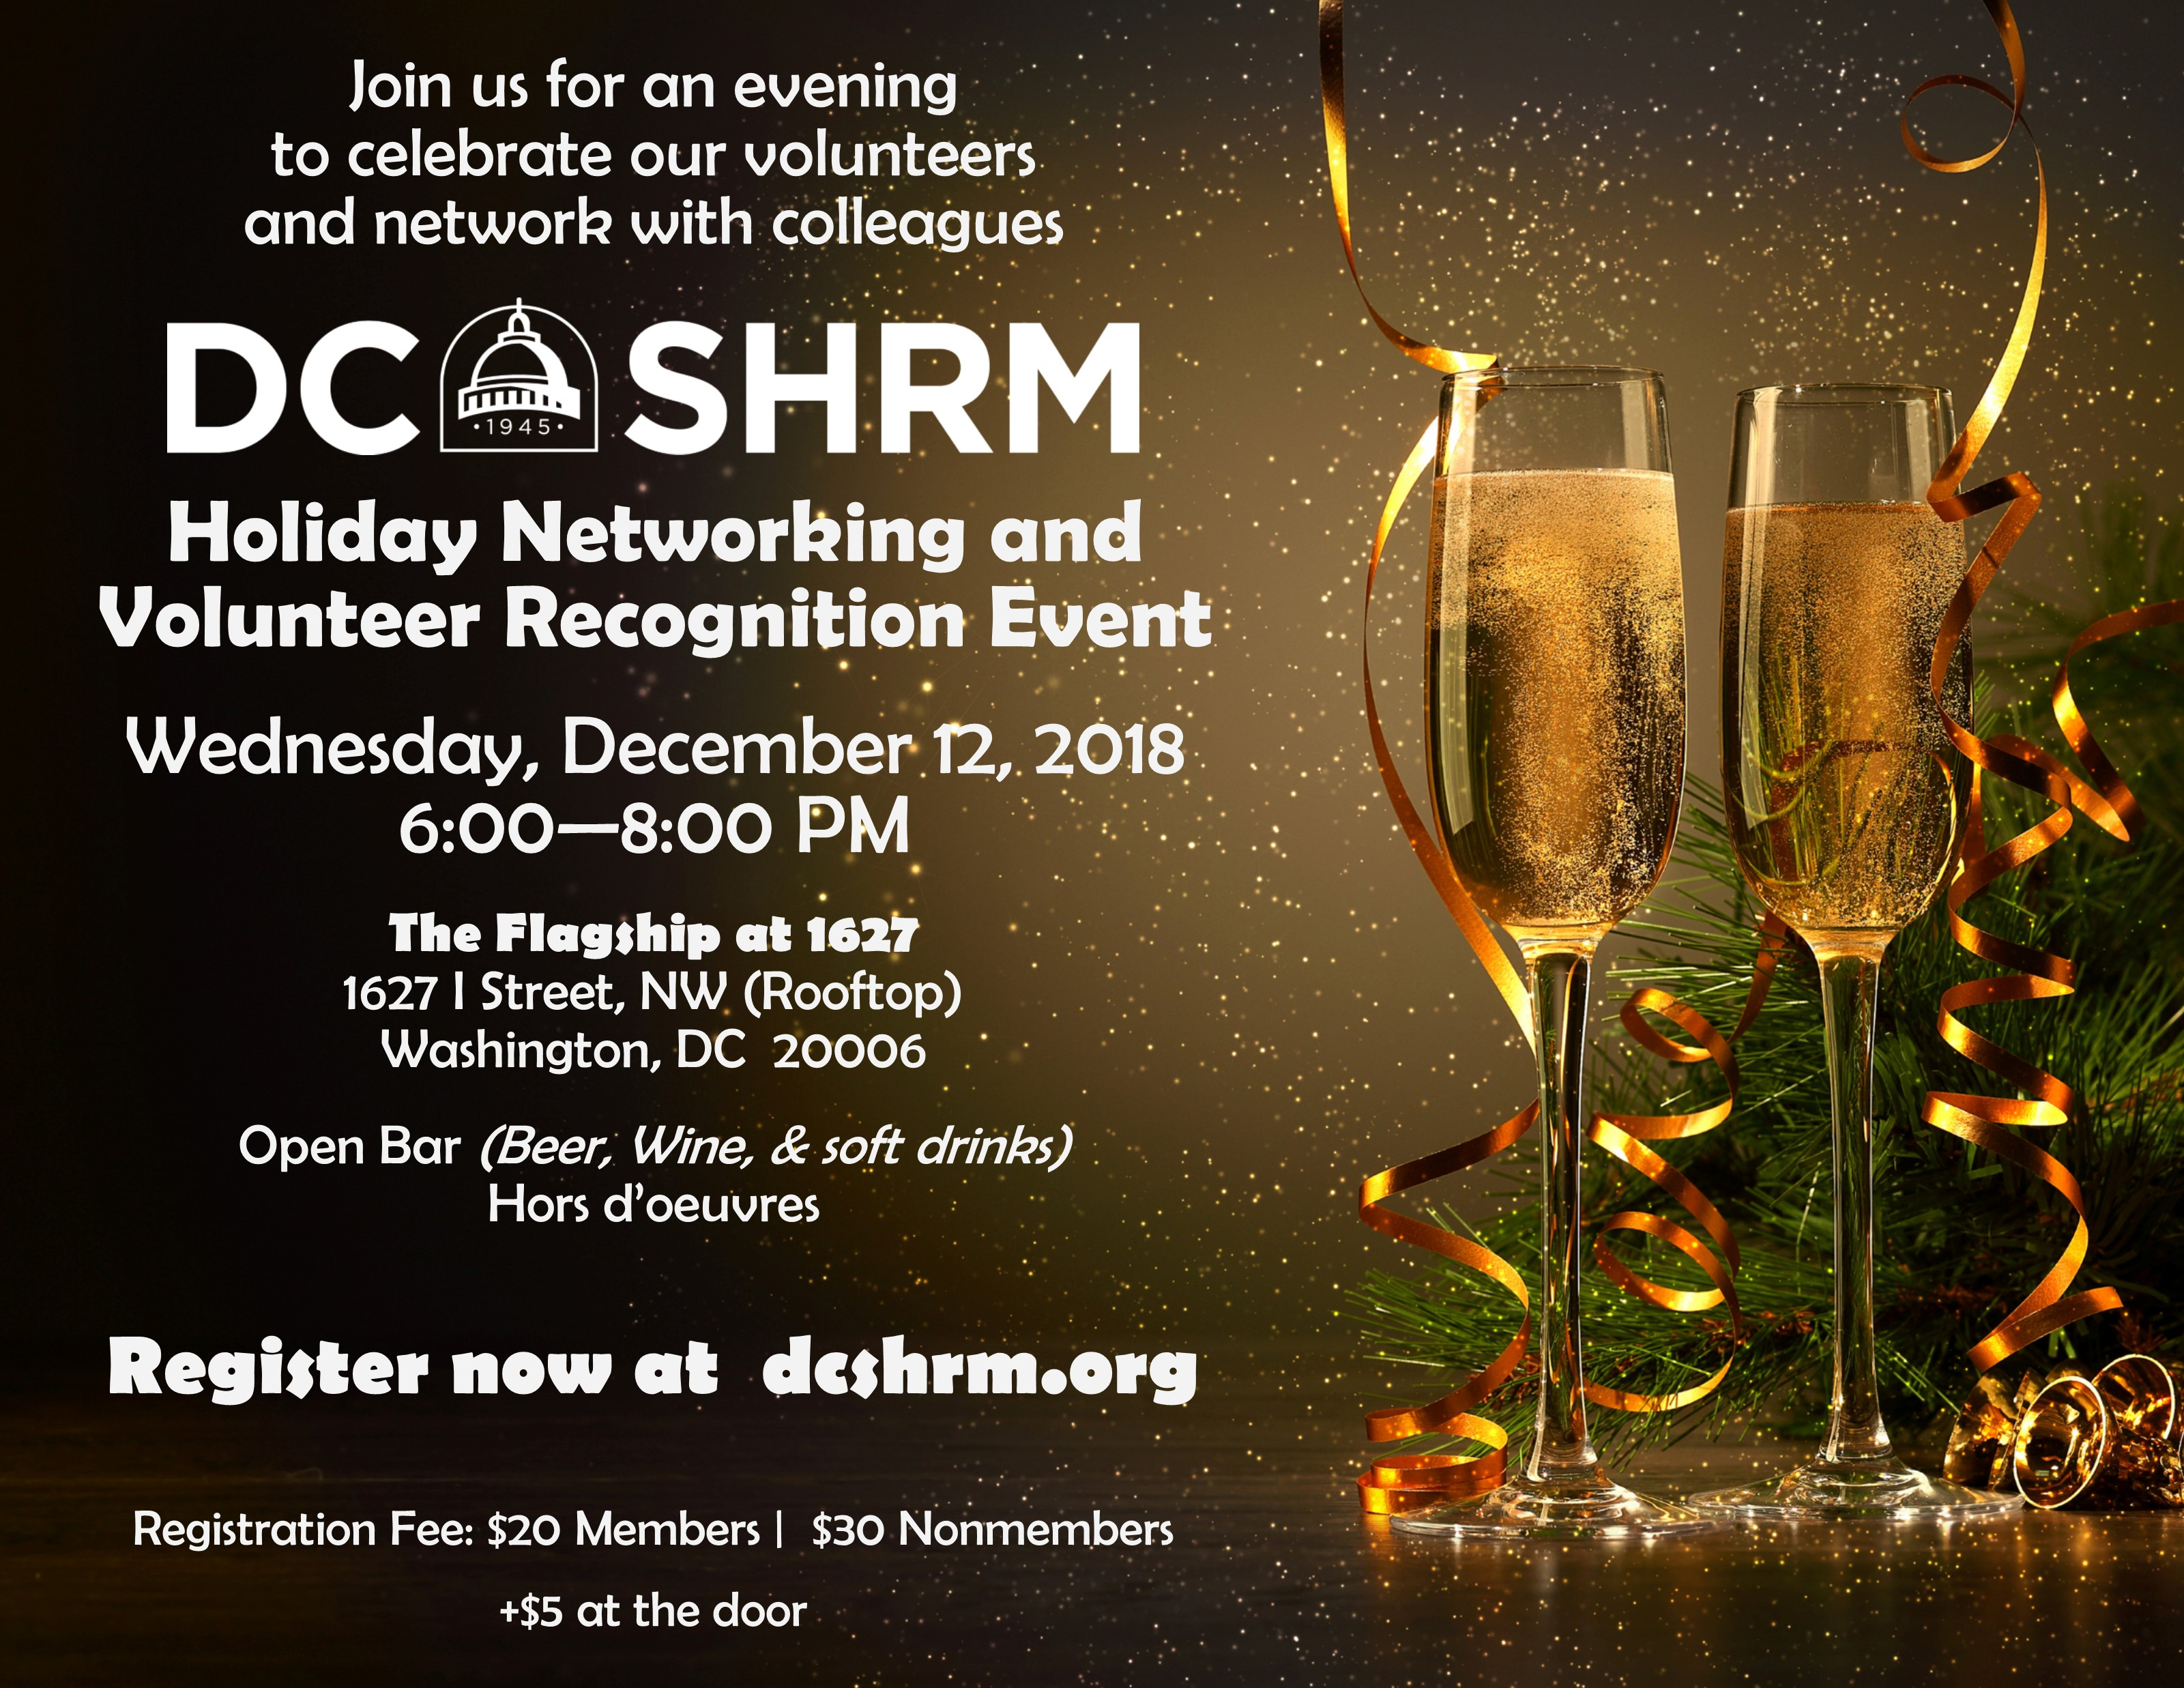 Join us for the DC SHRM Holiday Networking and Volunteer Recognition Event - December 12, 2018, 6 - 8 PM